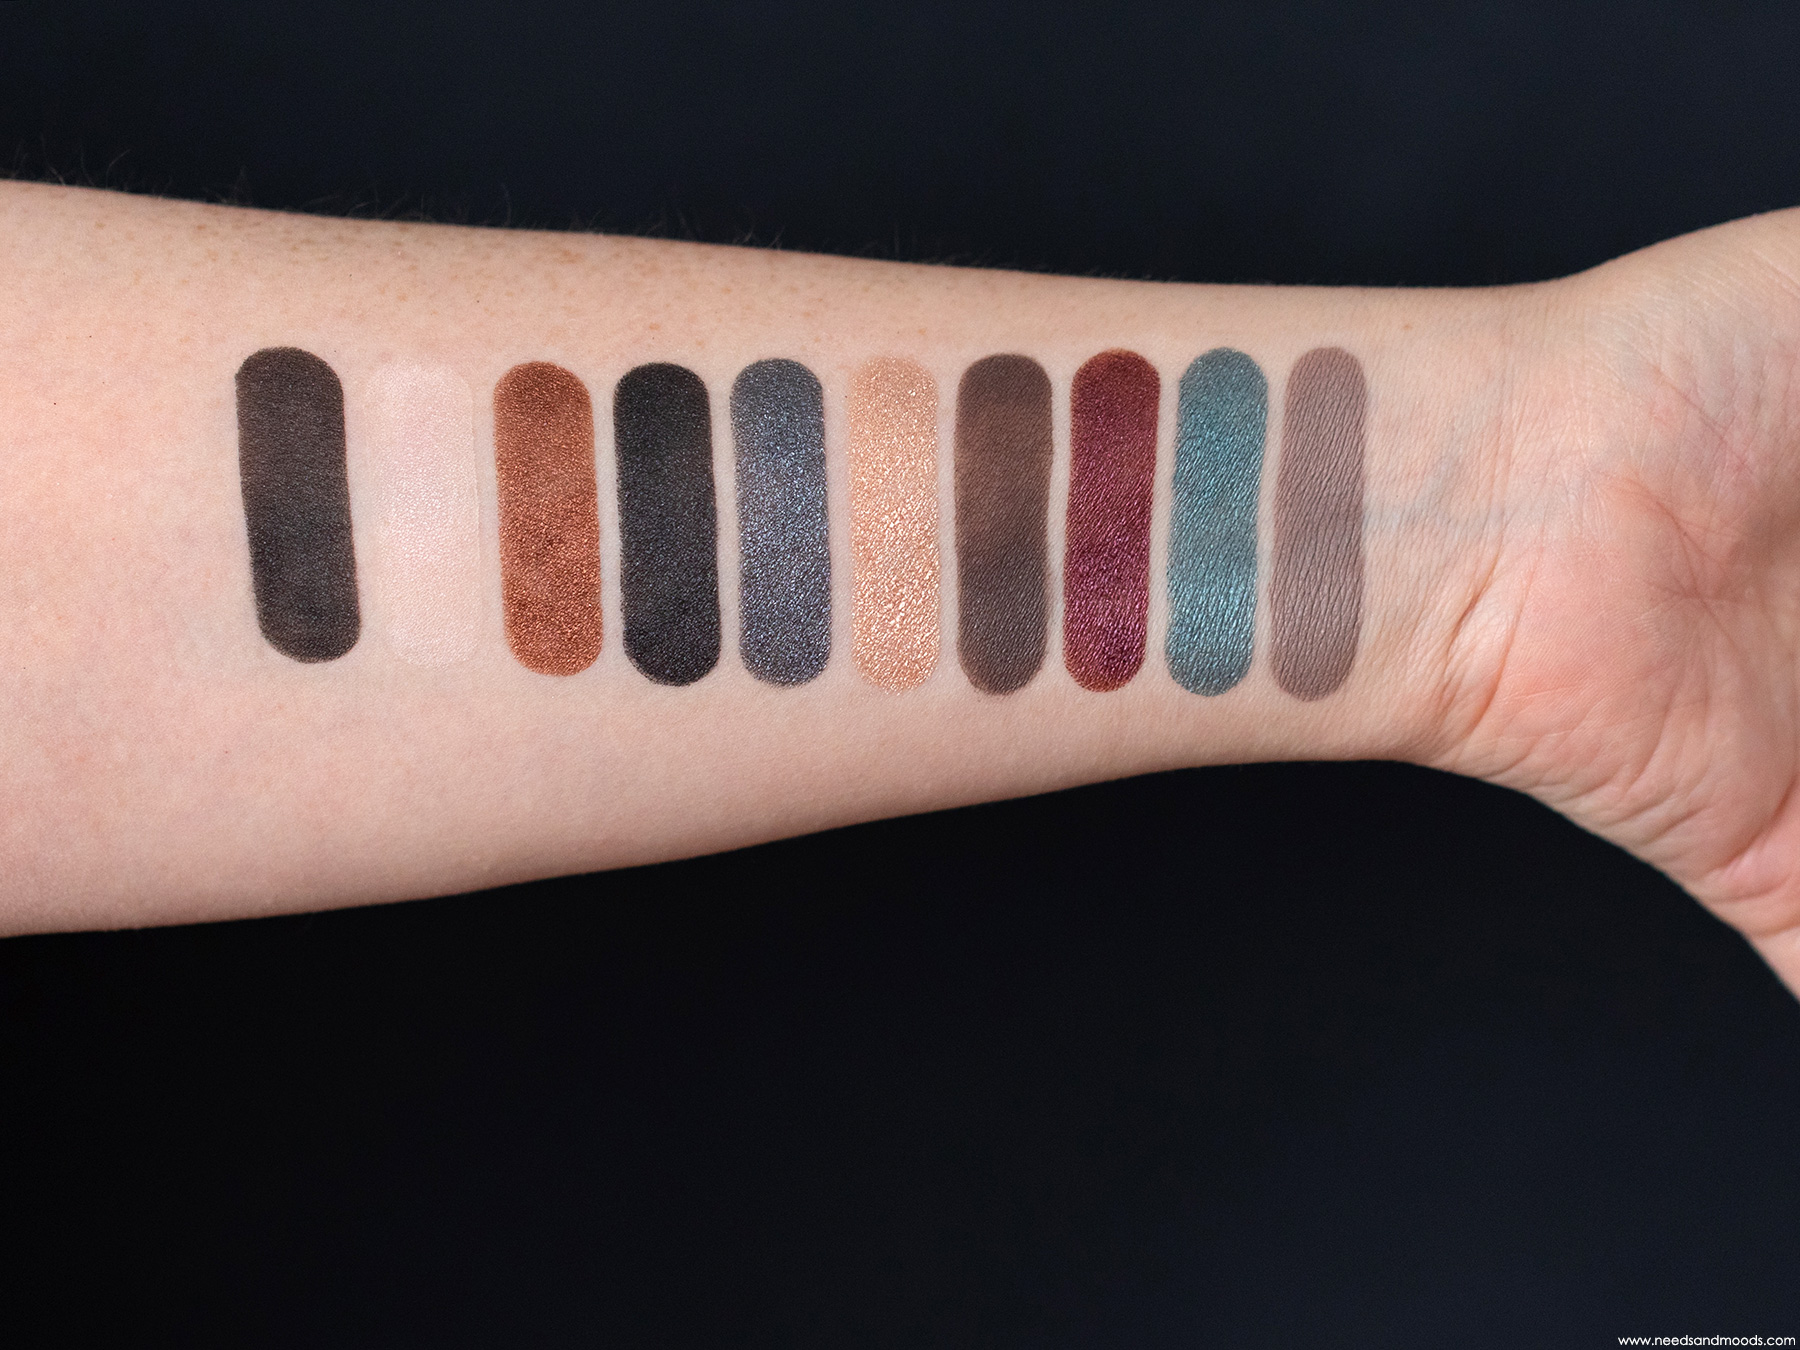 by terry VIP Expert Palette Swatch night